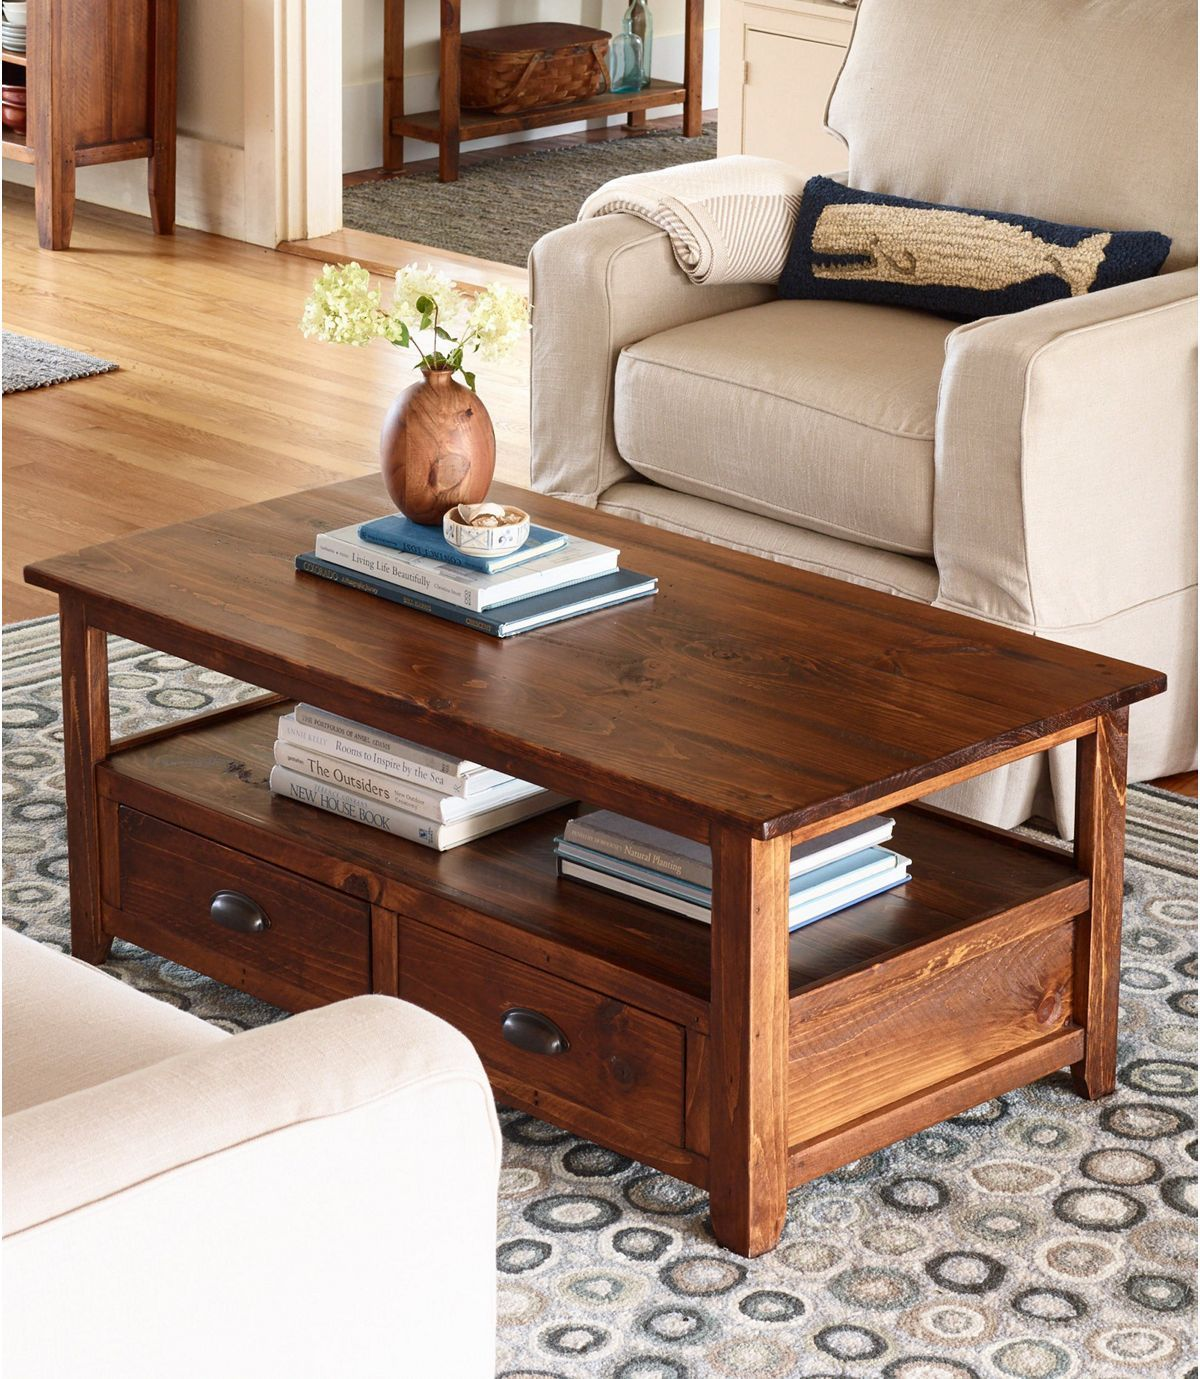 Rustic Wooden Coffee Table Coffee Table Inspiration Wooden Coffee Table Wooden Coffee Table Designs